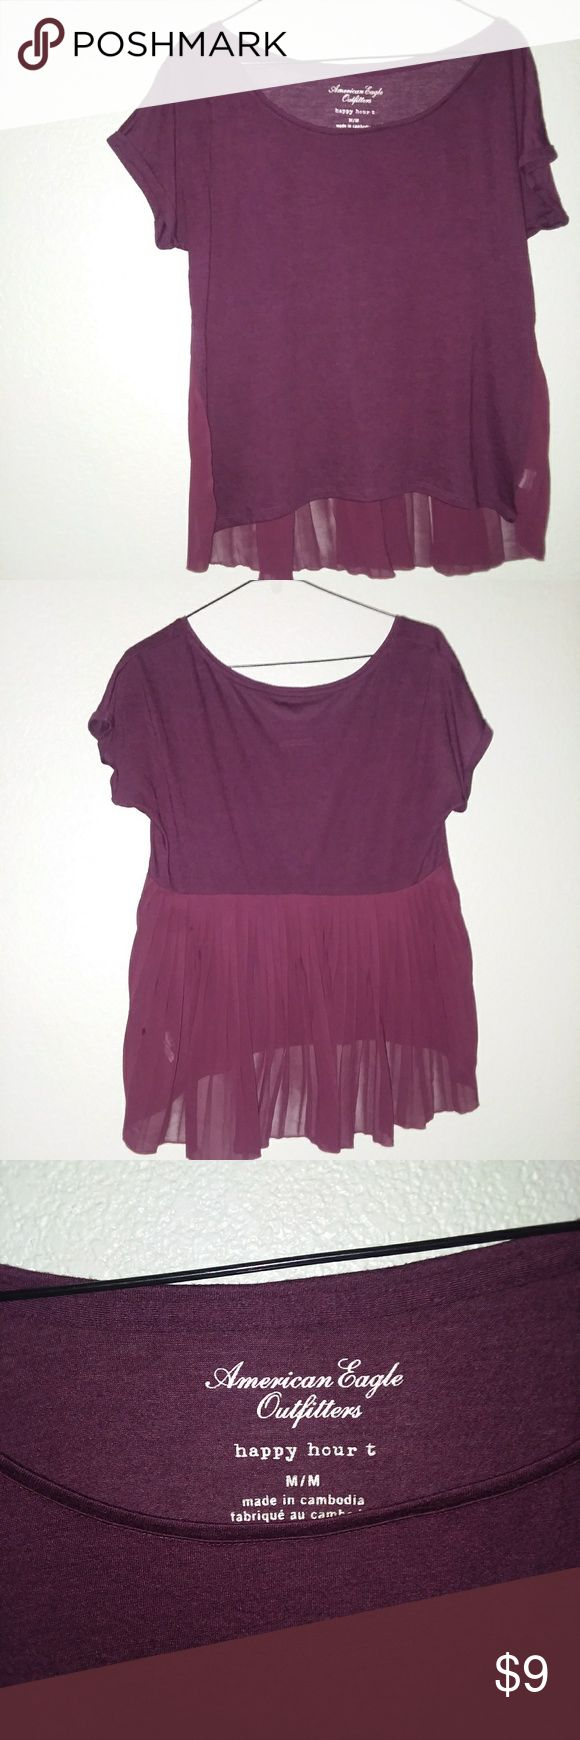 American Eagle Happy Hour T Size - Women's Medium Color - Dark Red Burgundy Details - Pleated Sheer Back Wear - Worn American Eagle Outfitters Tops